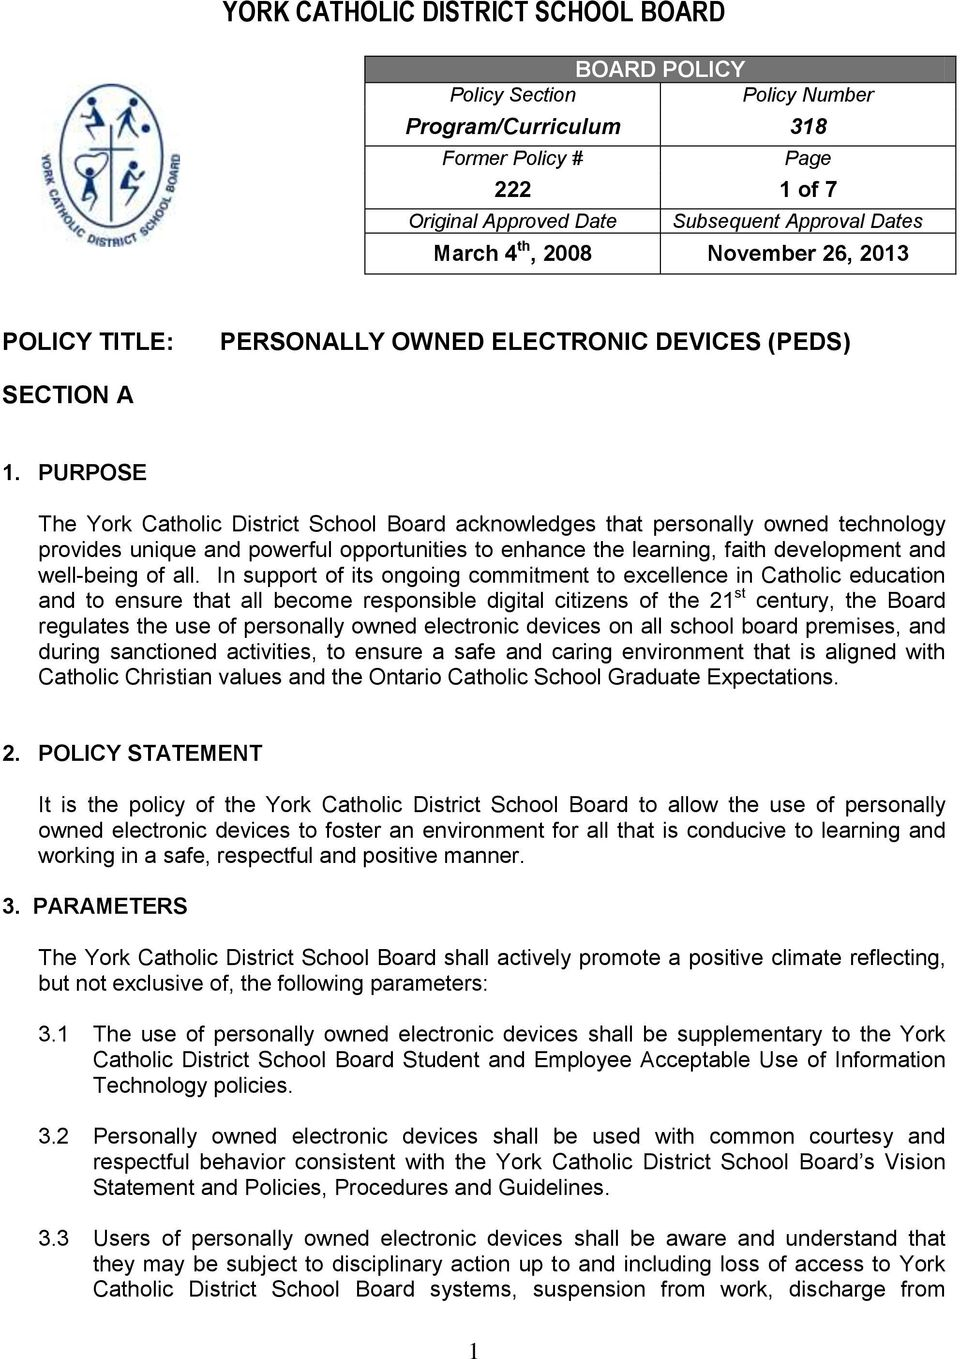 PURPOSE The York Catholic District School Board acknowledges that personally owned technology provides unique and powerful opportunities to enhance the learning, faith development and well-being of